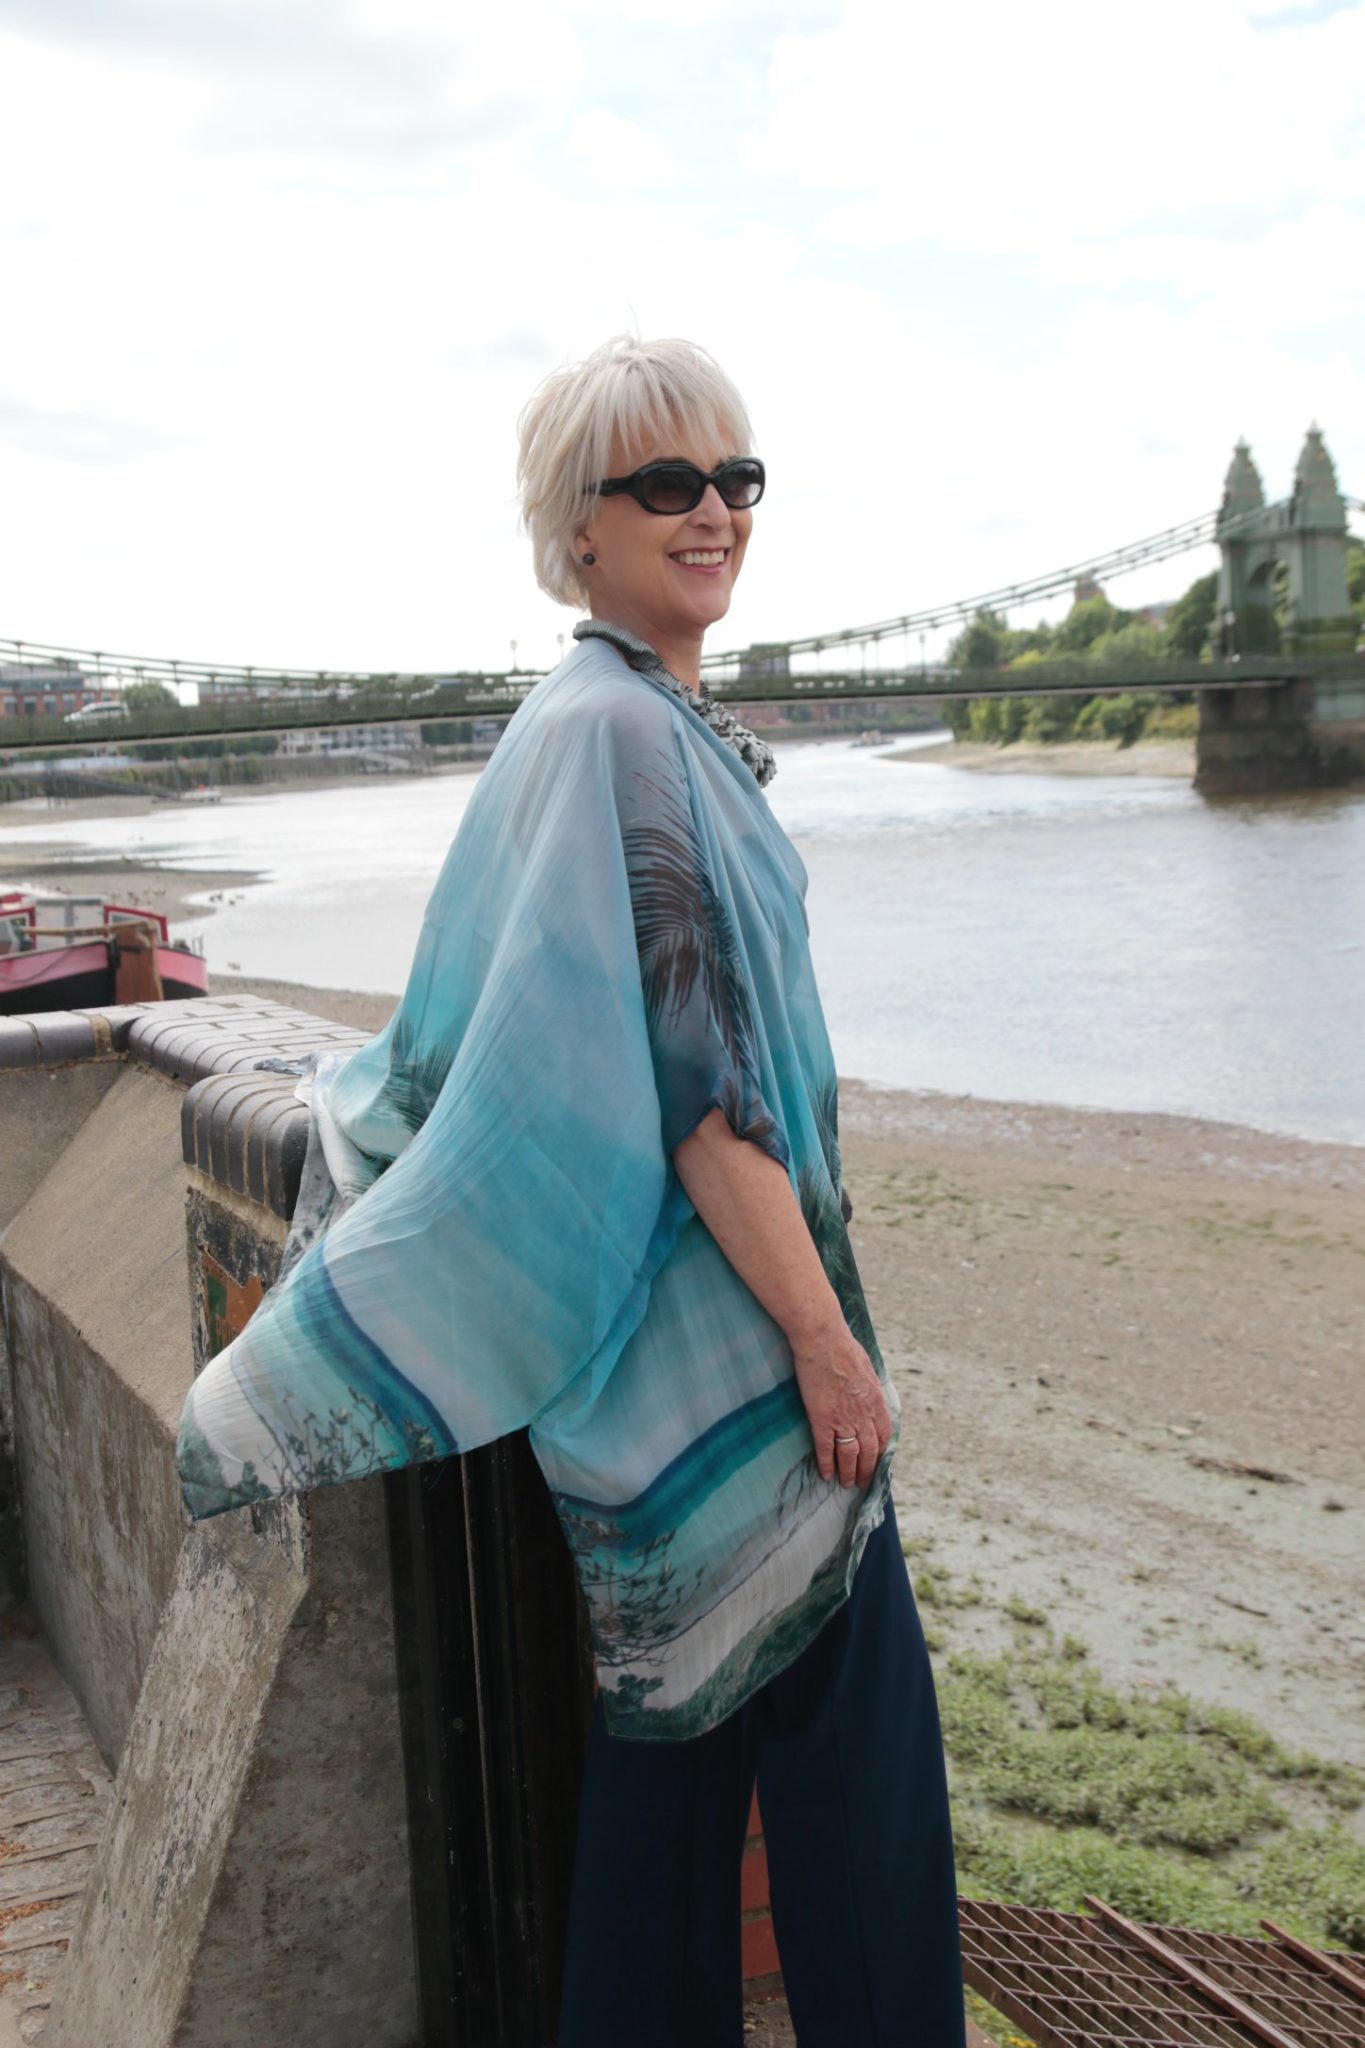 Silk chiffon printed top and navy trousers